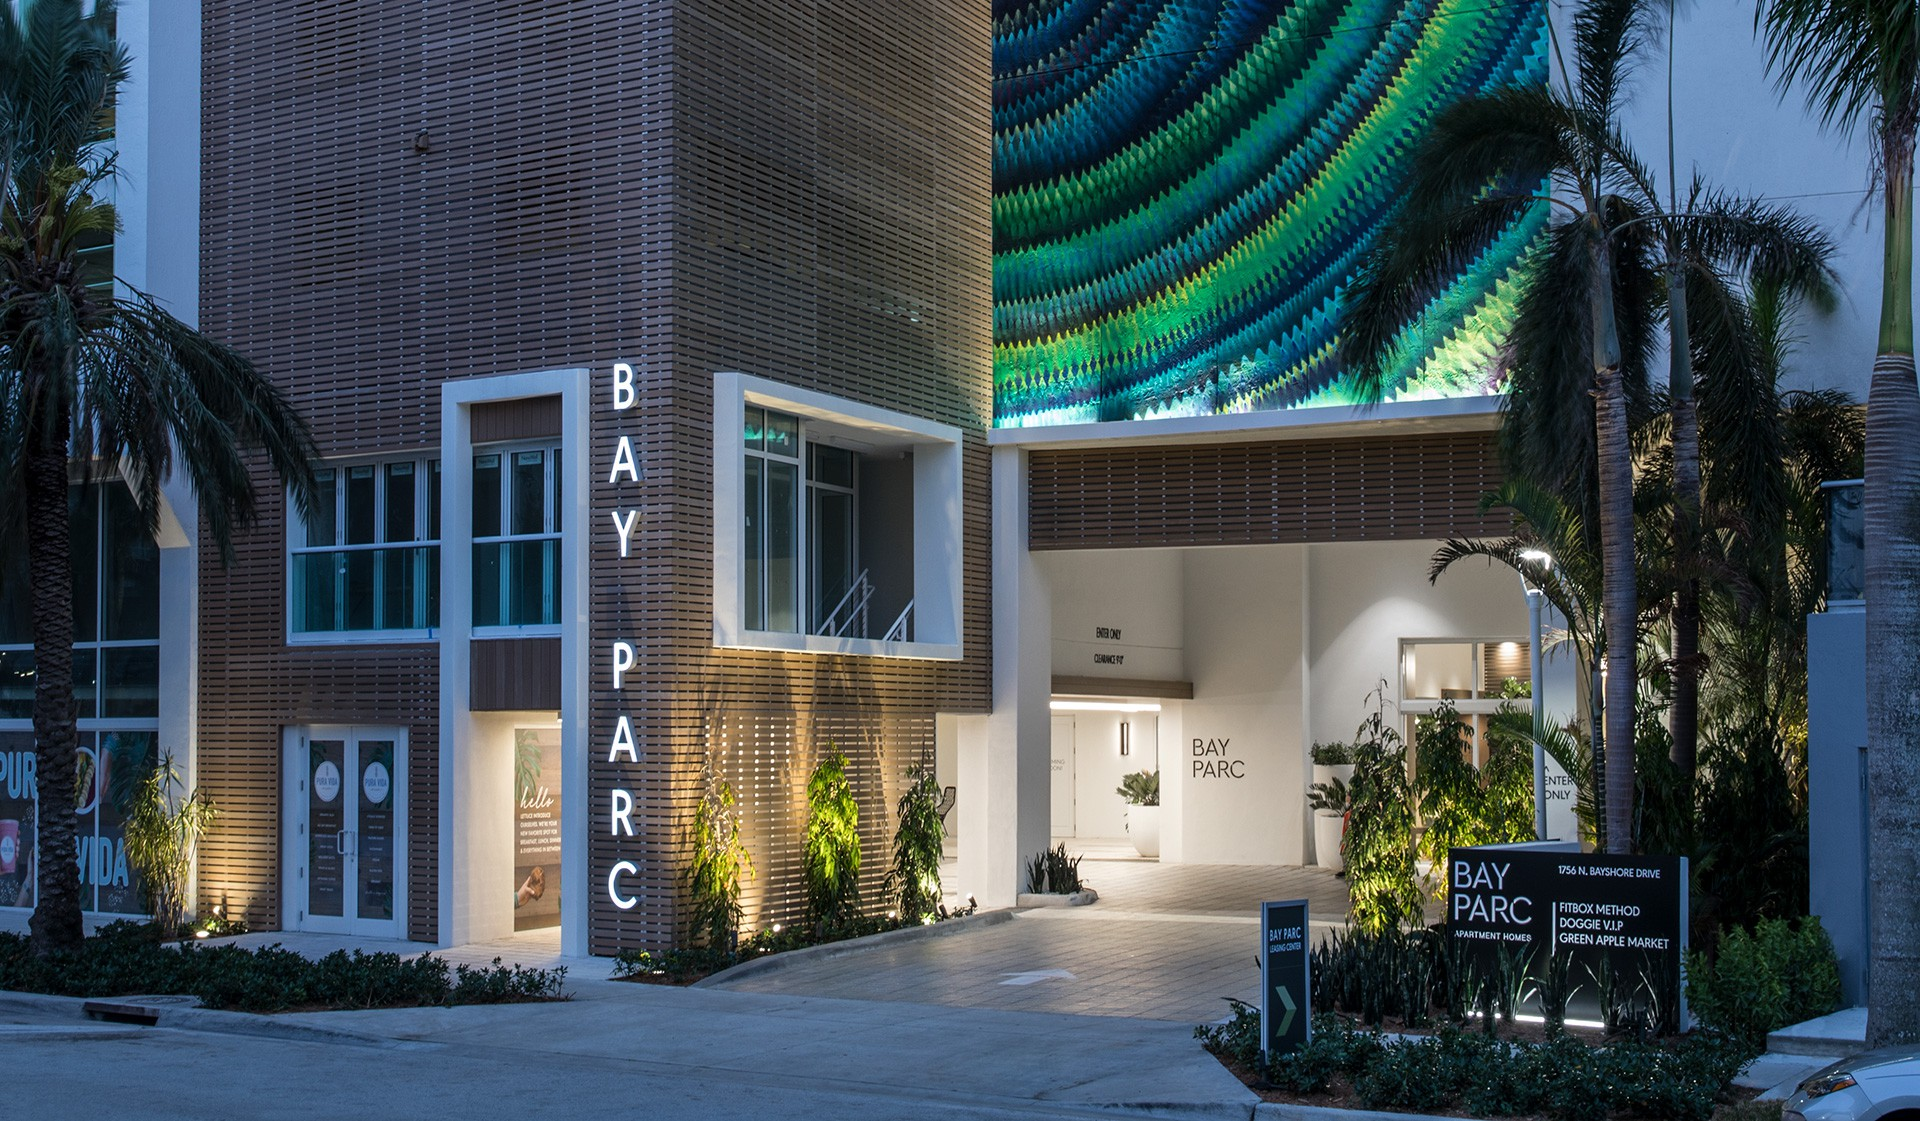 Bay Parc Apartments